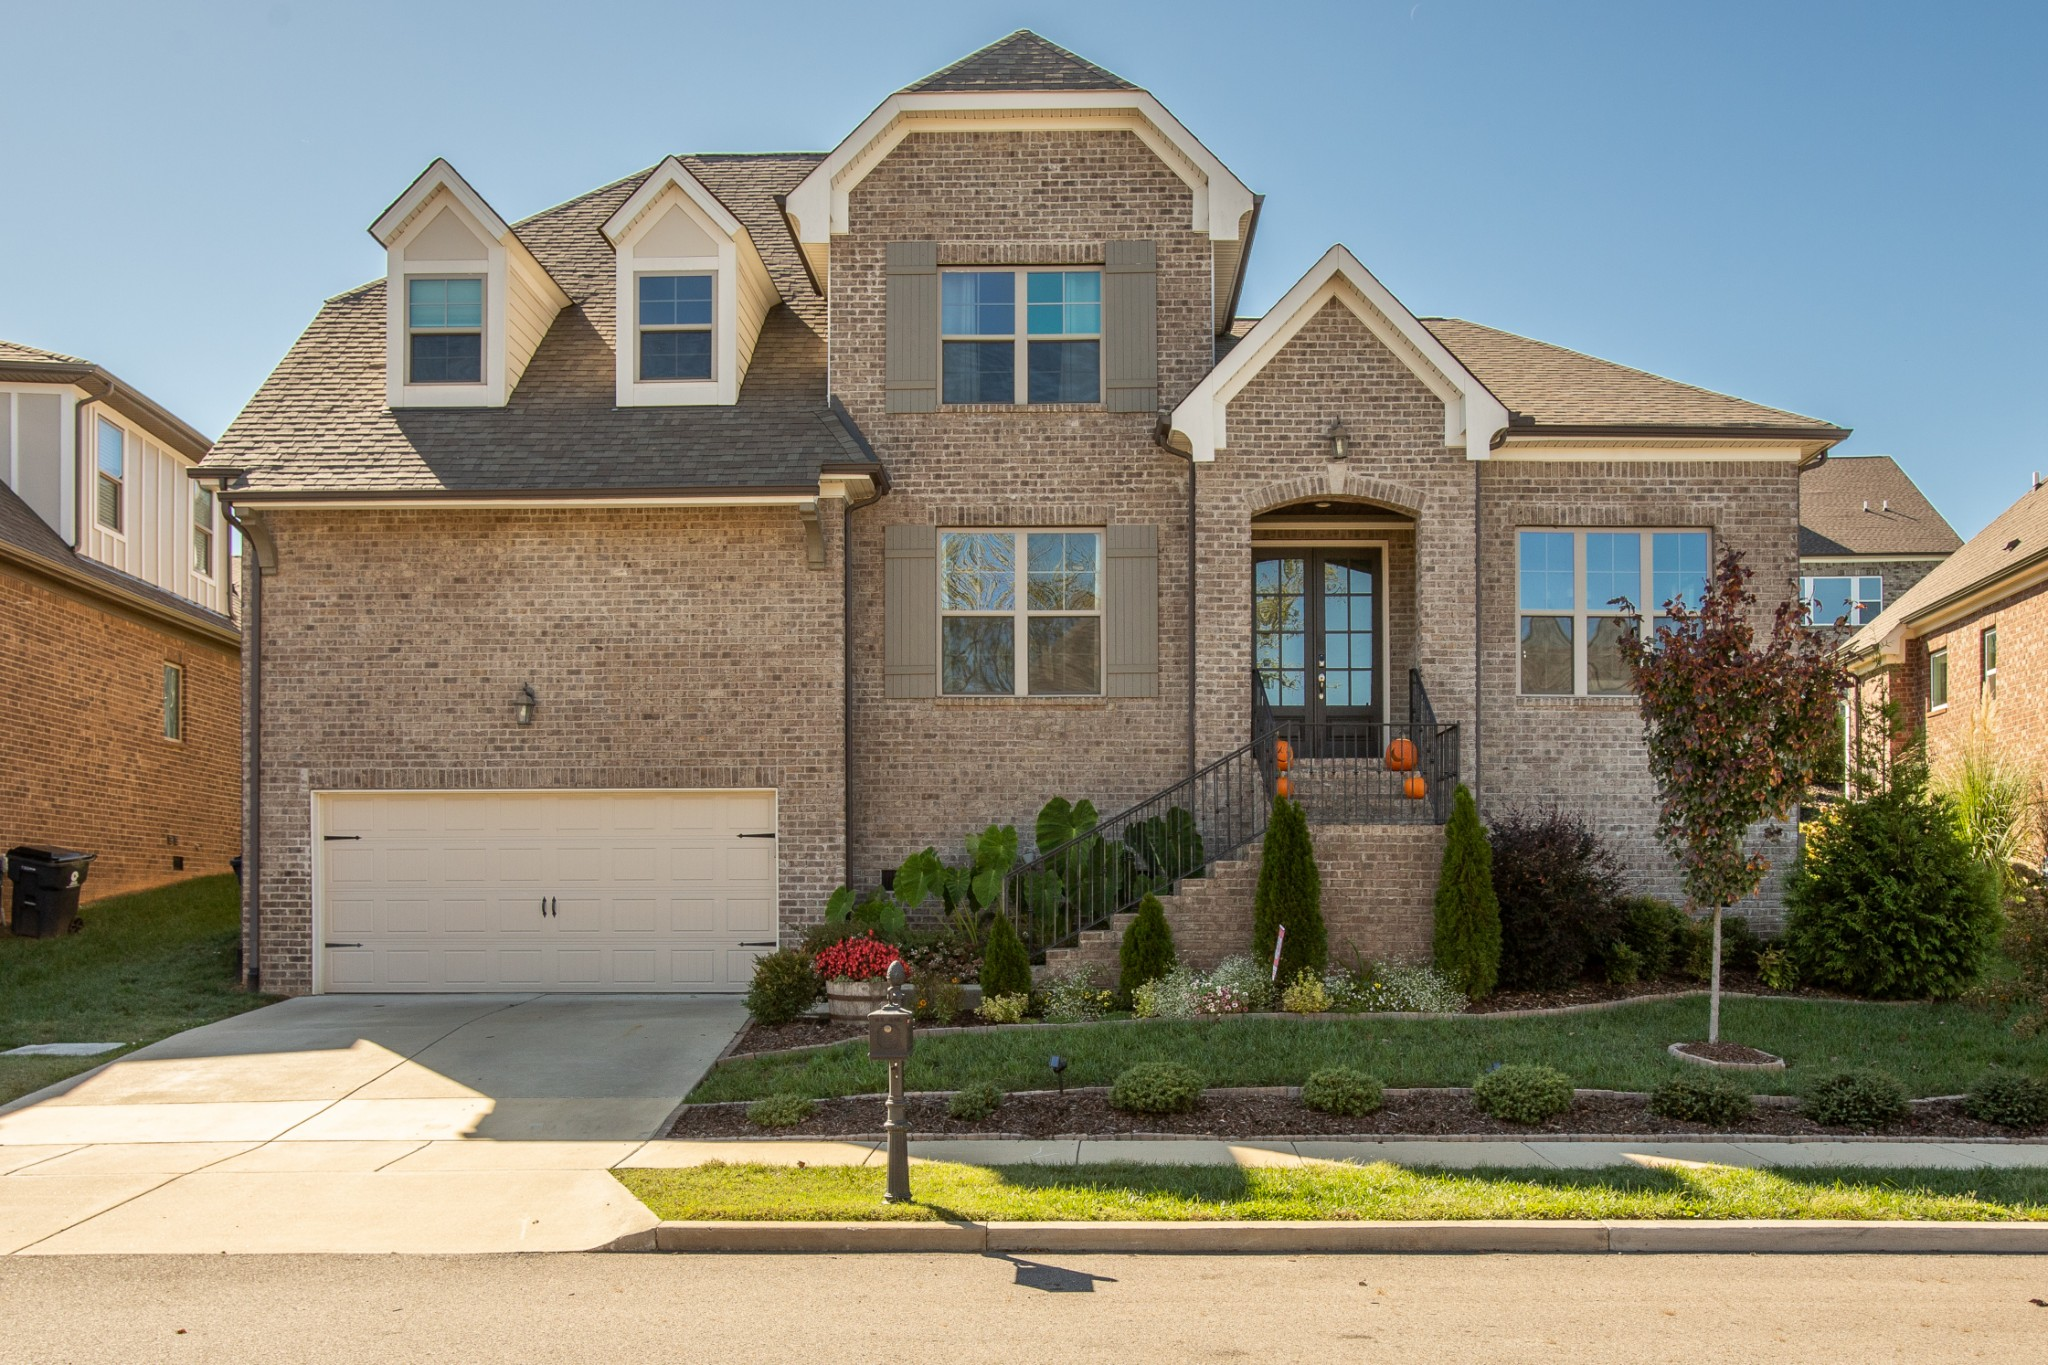 Motivated Seller!  This amazing home is move-in ready. Beautiful 4 bed/ 3.5 bath home in the desirable Canterbury community. Great amenities and less than a mile from the new Williamson K-8 schools. Are you looking for an open concept with master on the main, a gorgeous kitchen with white cabinets and granite throughout, formal dining room along with an office, a  Master bath with double vanities, great front porch, glass tile shower & walk in closet. This is it!    Don't miss this beauty!